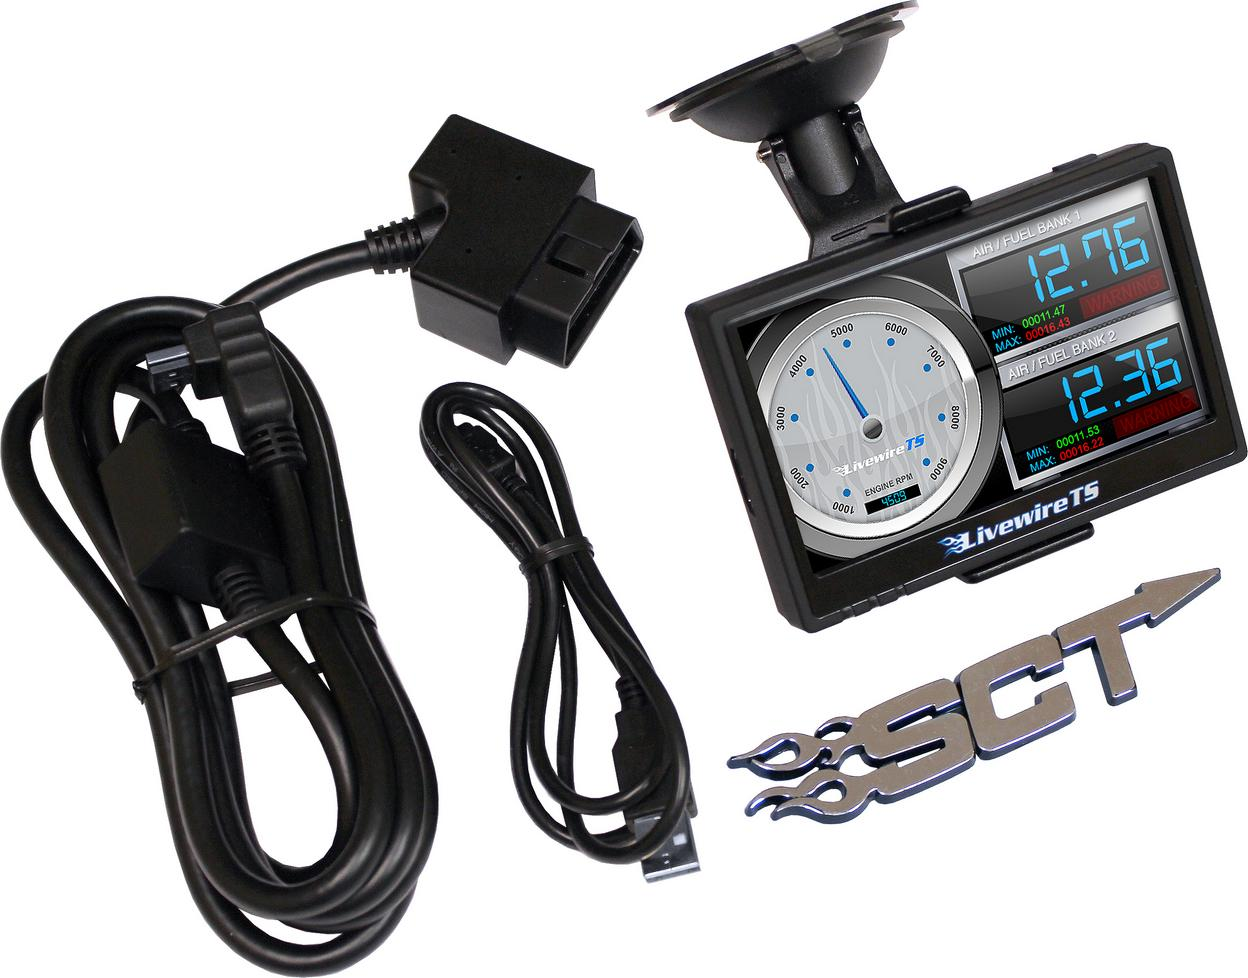 Ford Livewire TS Pre-Programmed Device